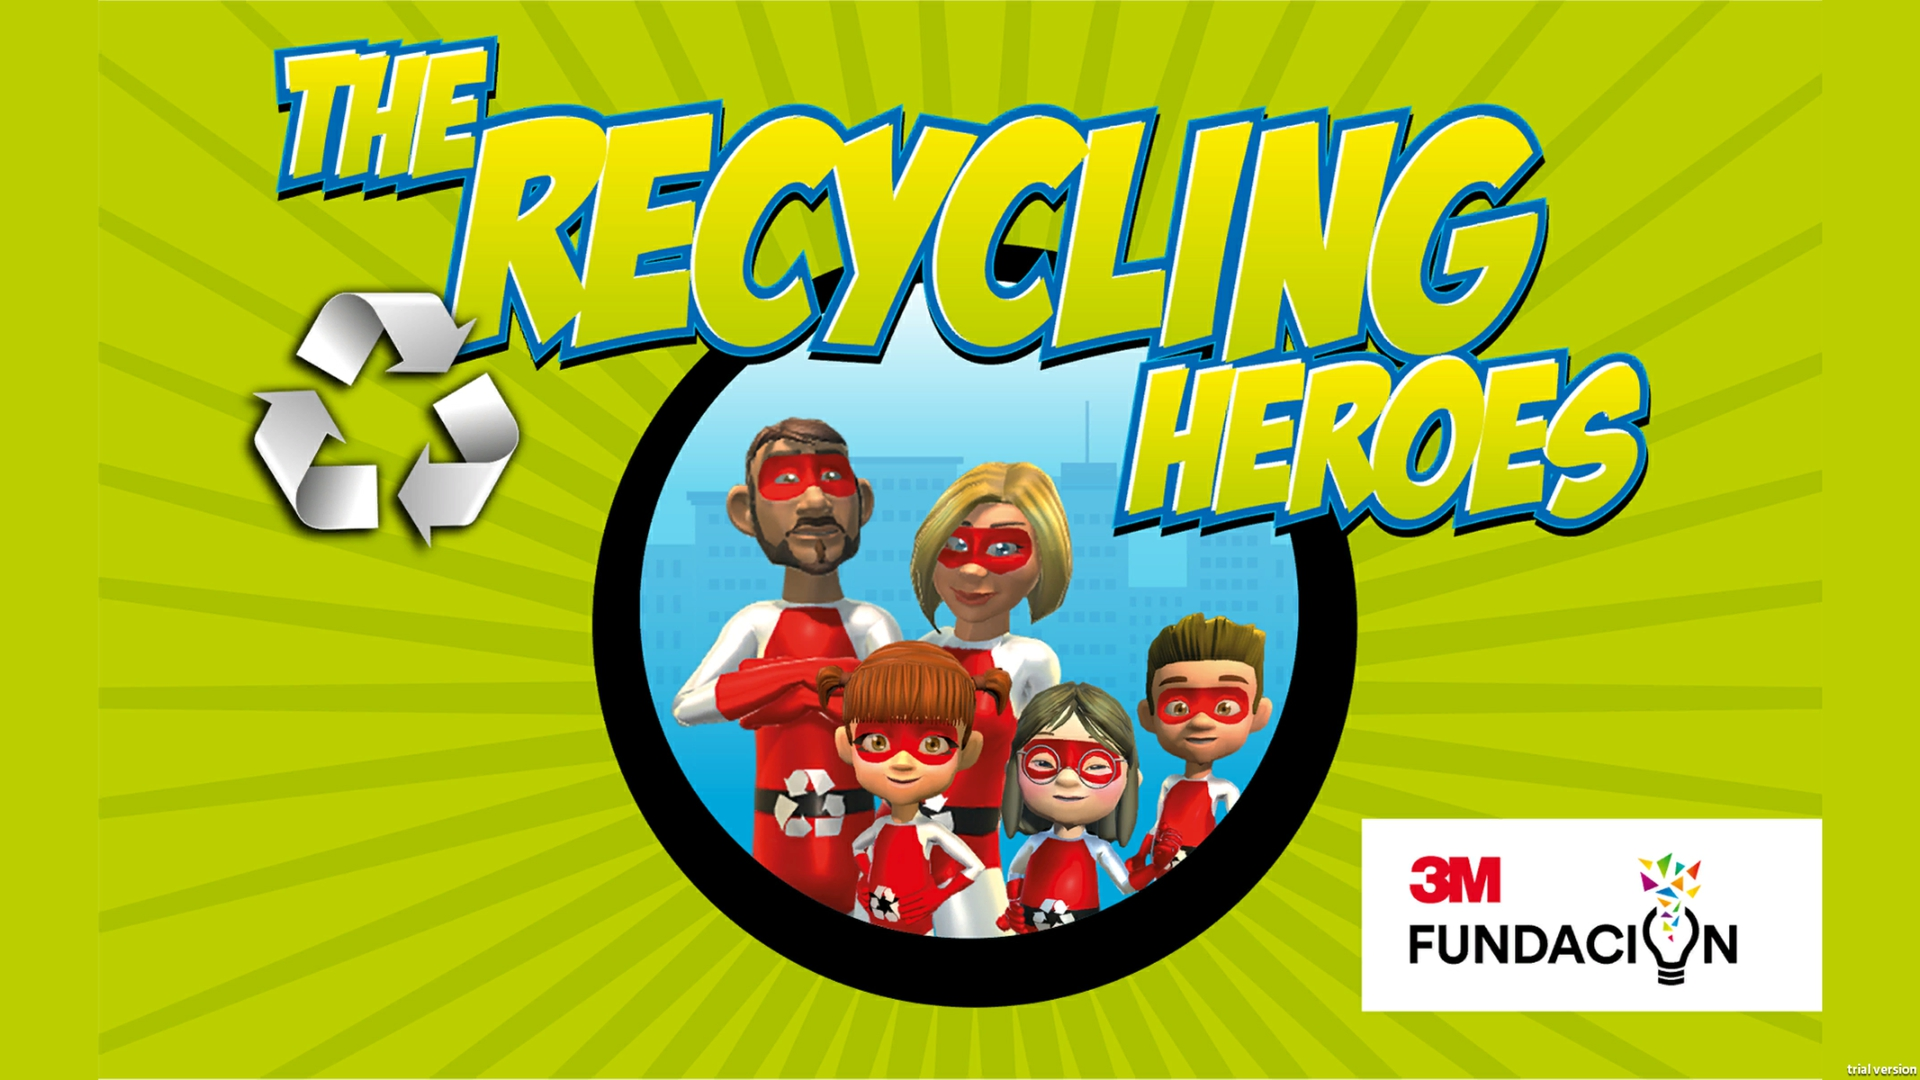 The Recycling Heroes Principal